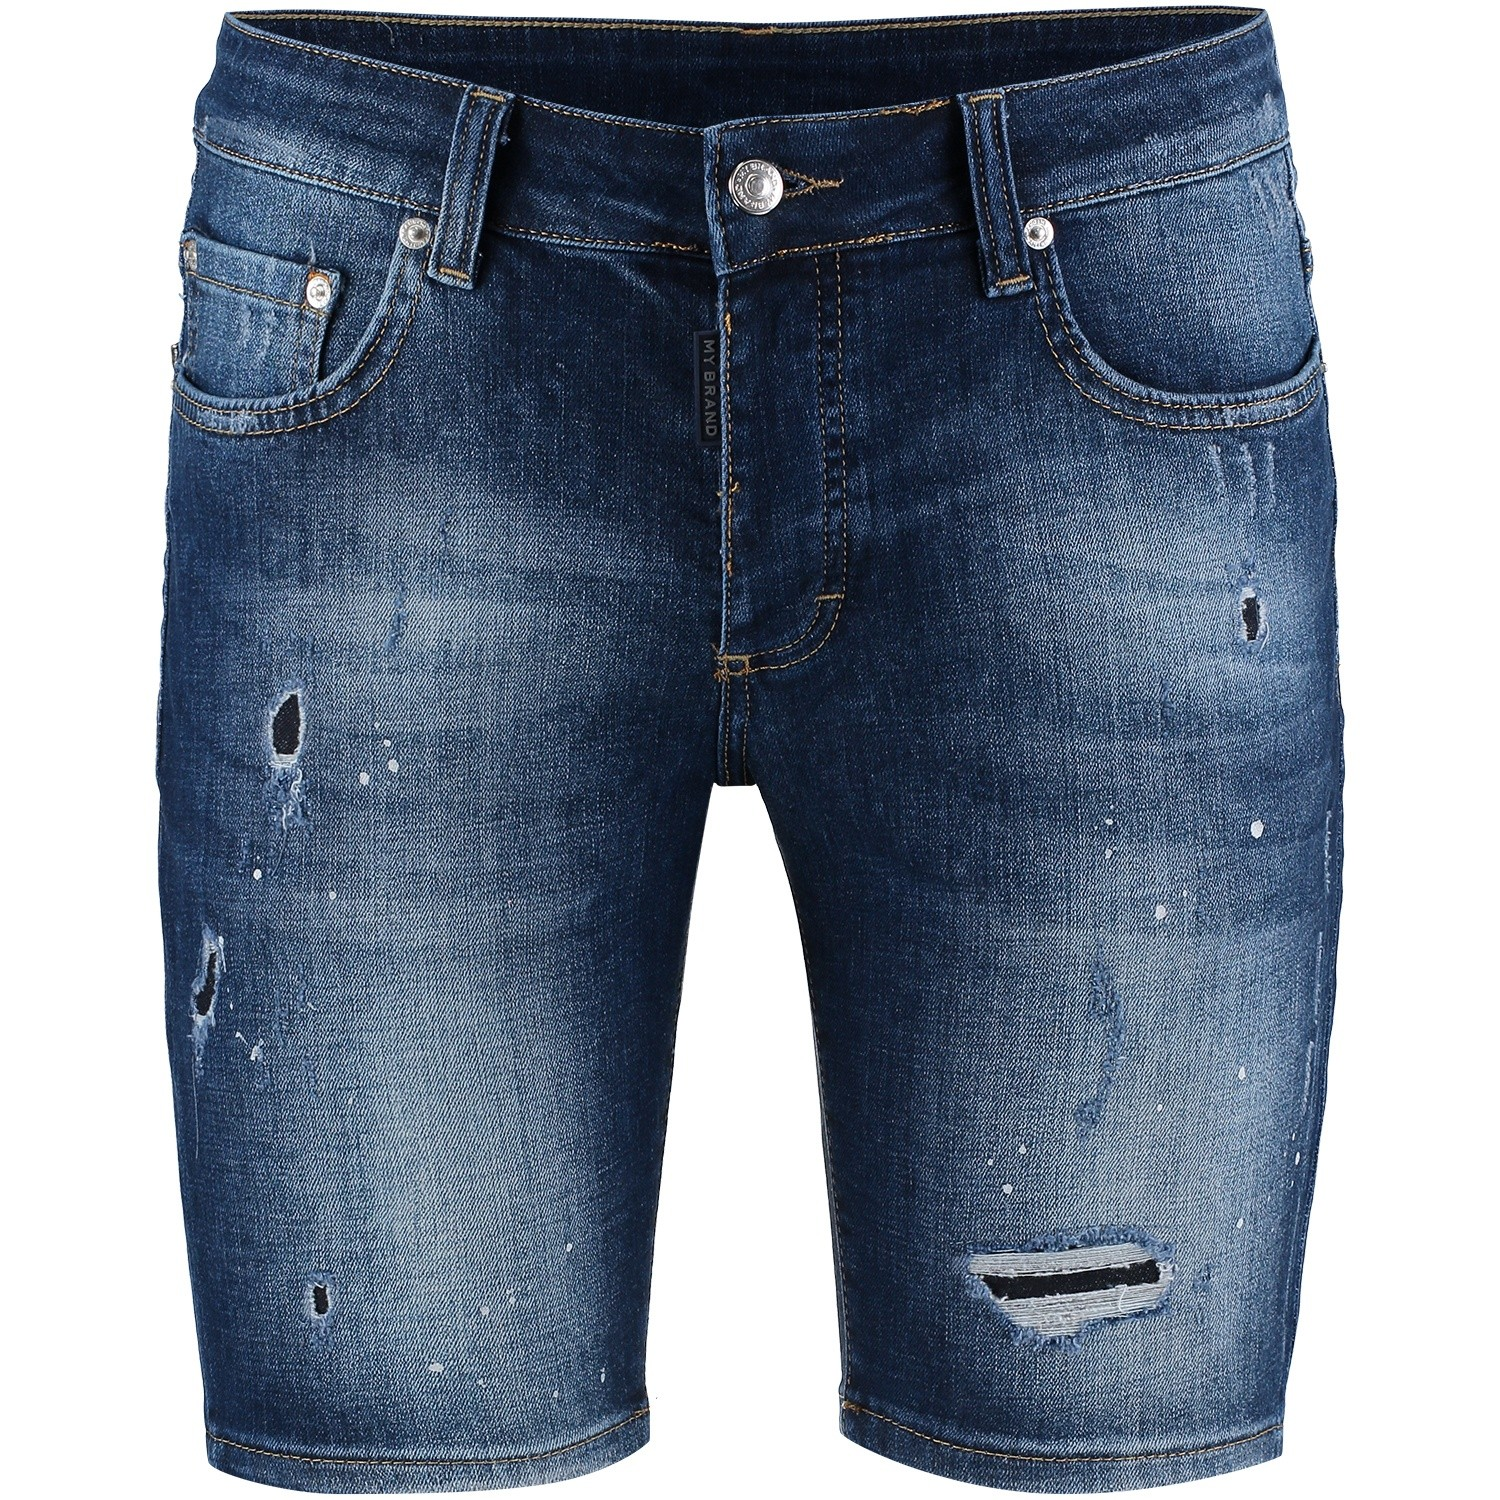 Picture of My Brand MMBJE007G3020 mens shorts jeans